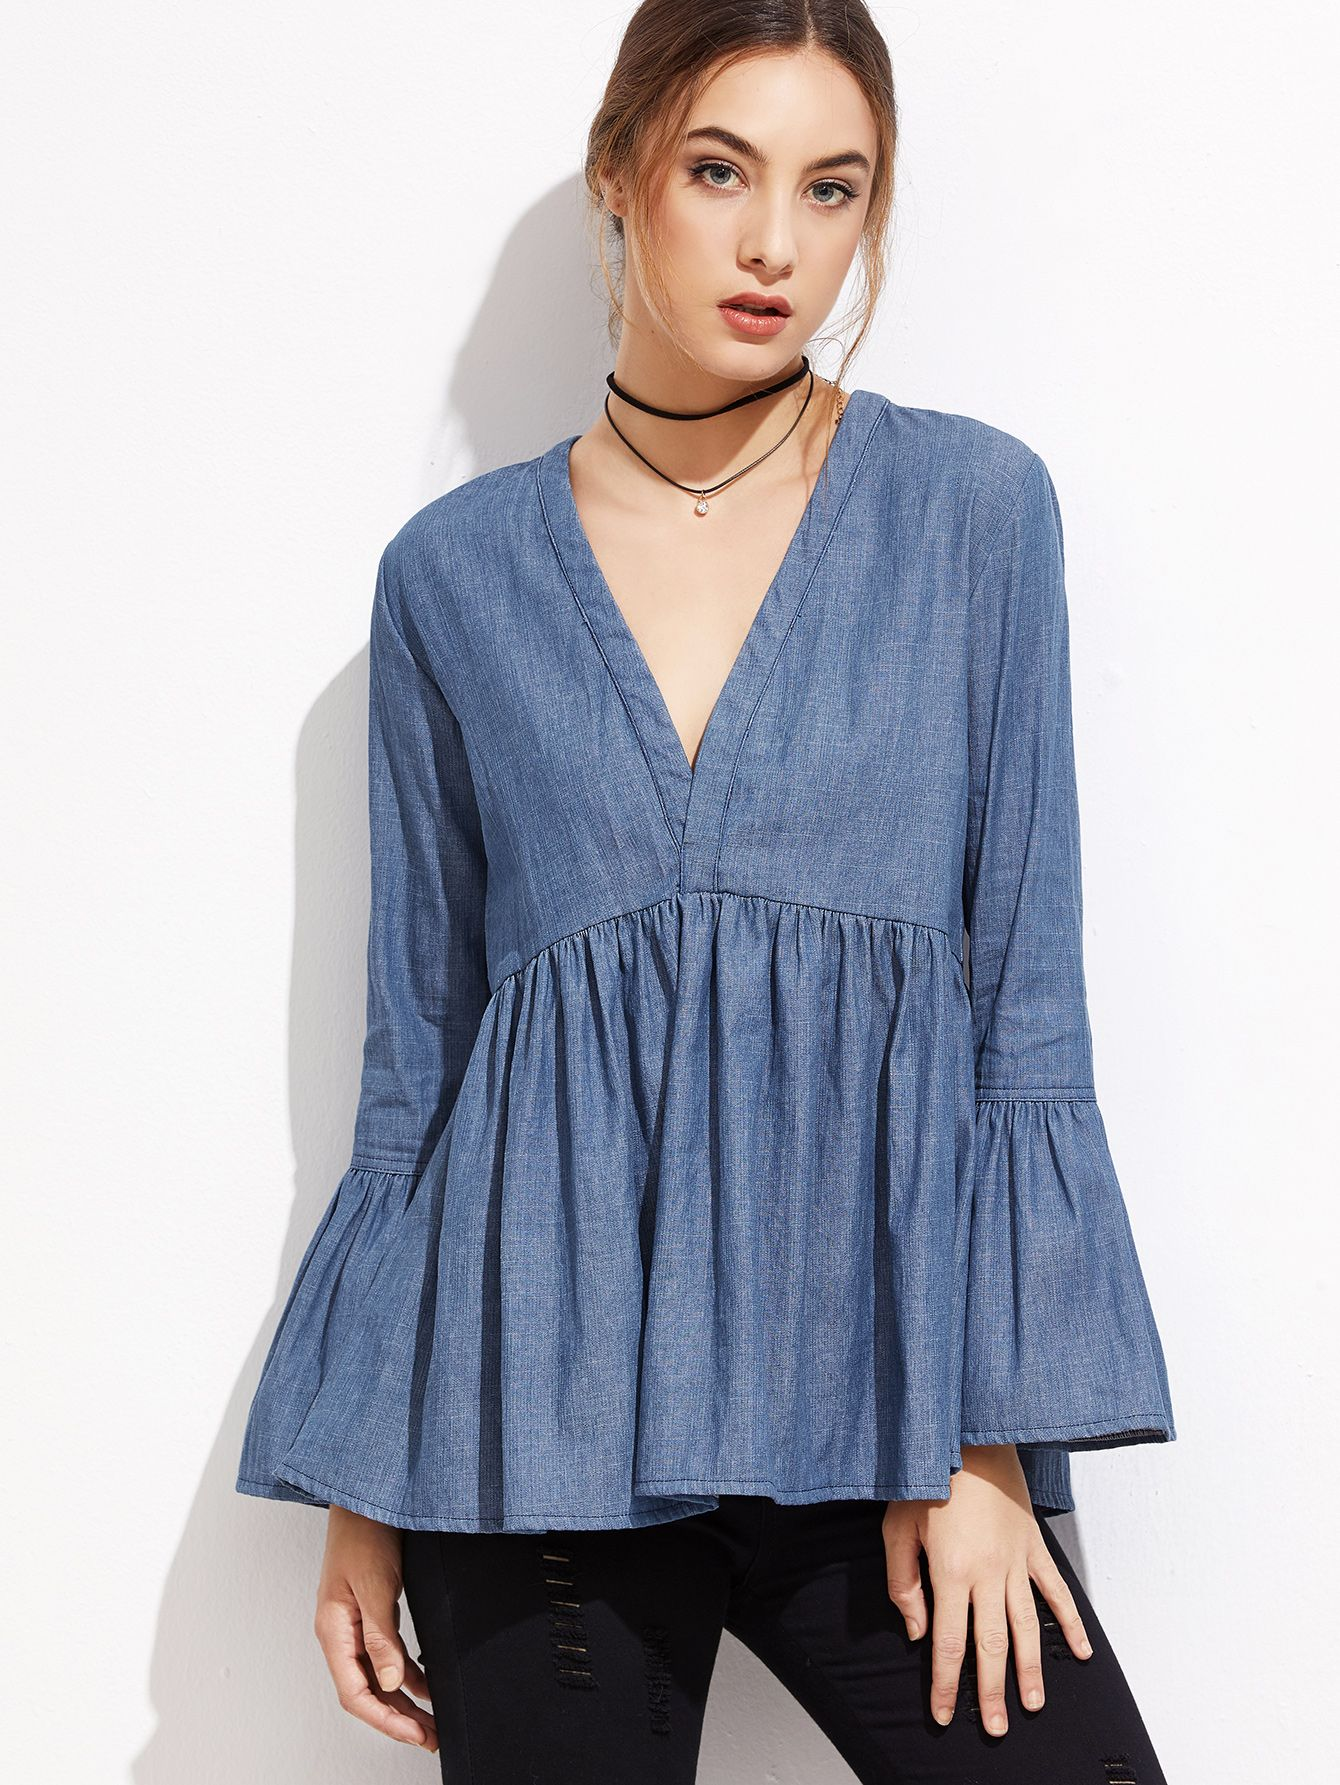 Blusa Con Cuello En V De Manga Acampanada En Denim Azul Denim Blouse Women Blouses For Women Fashion